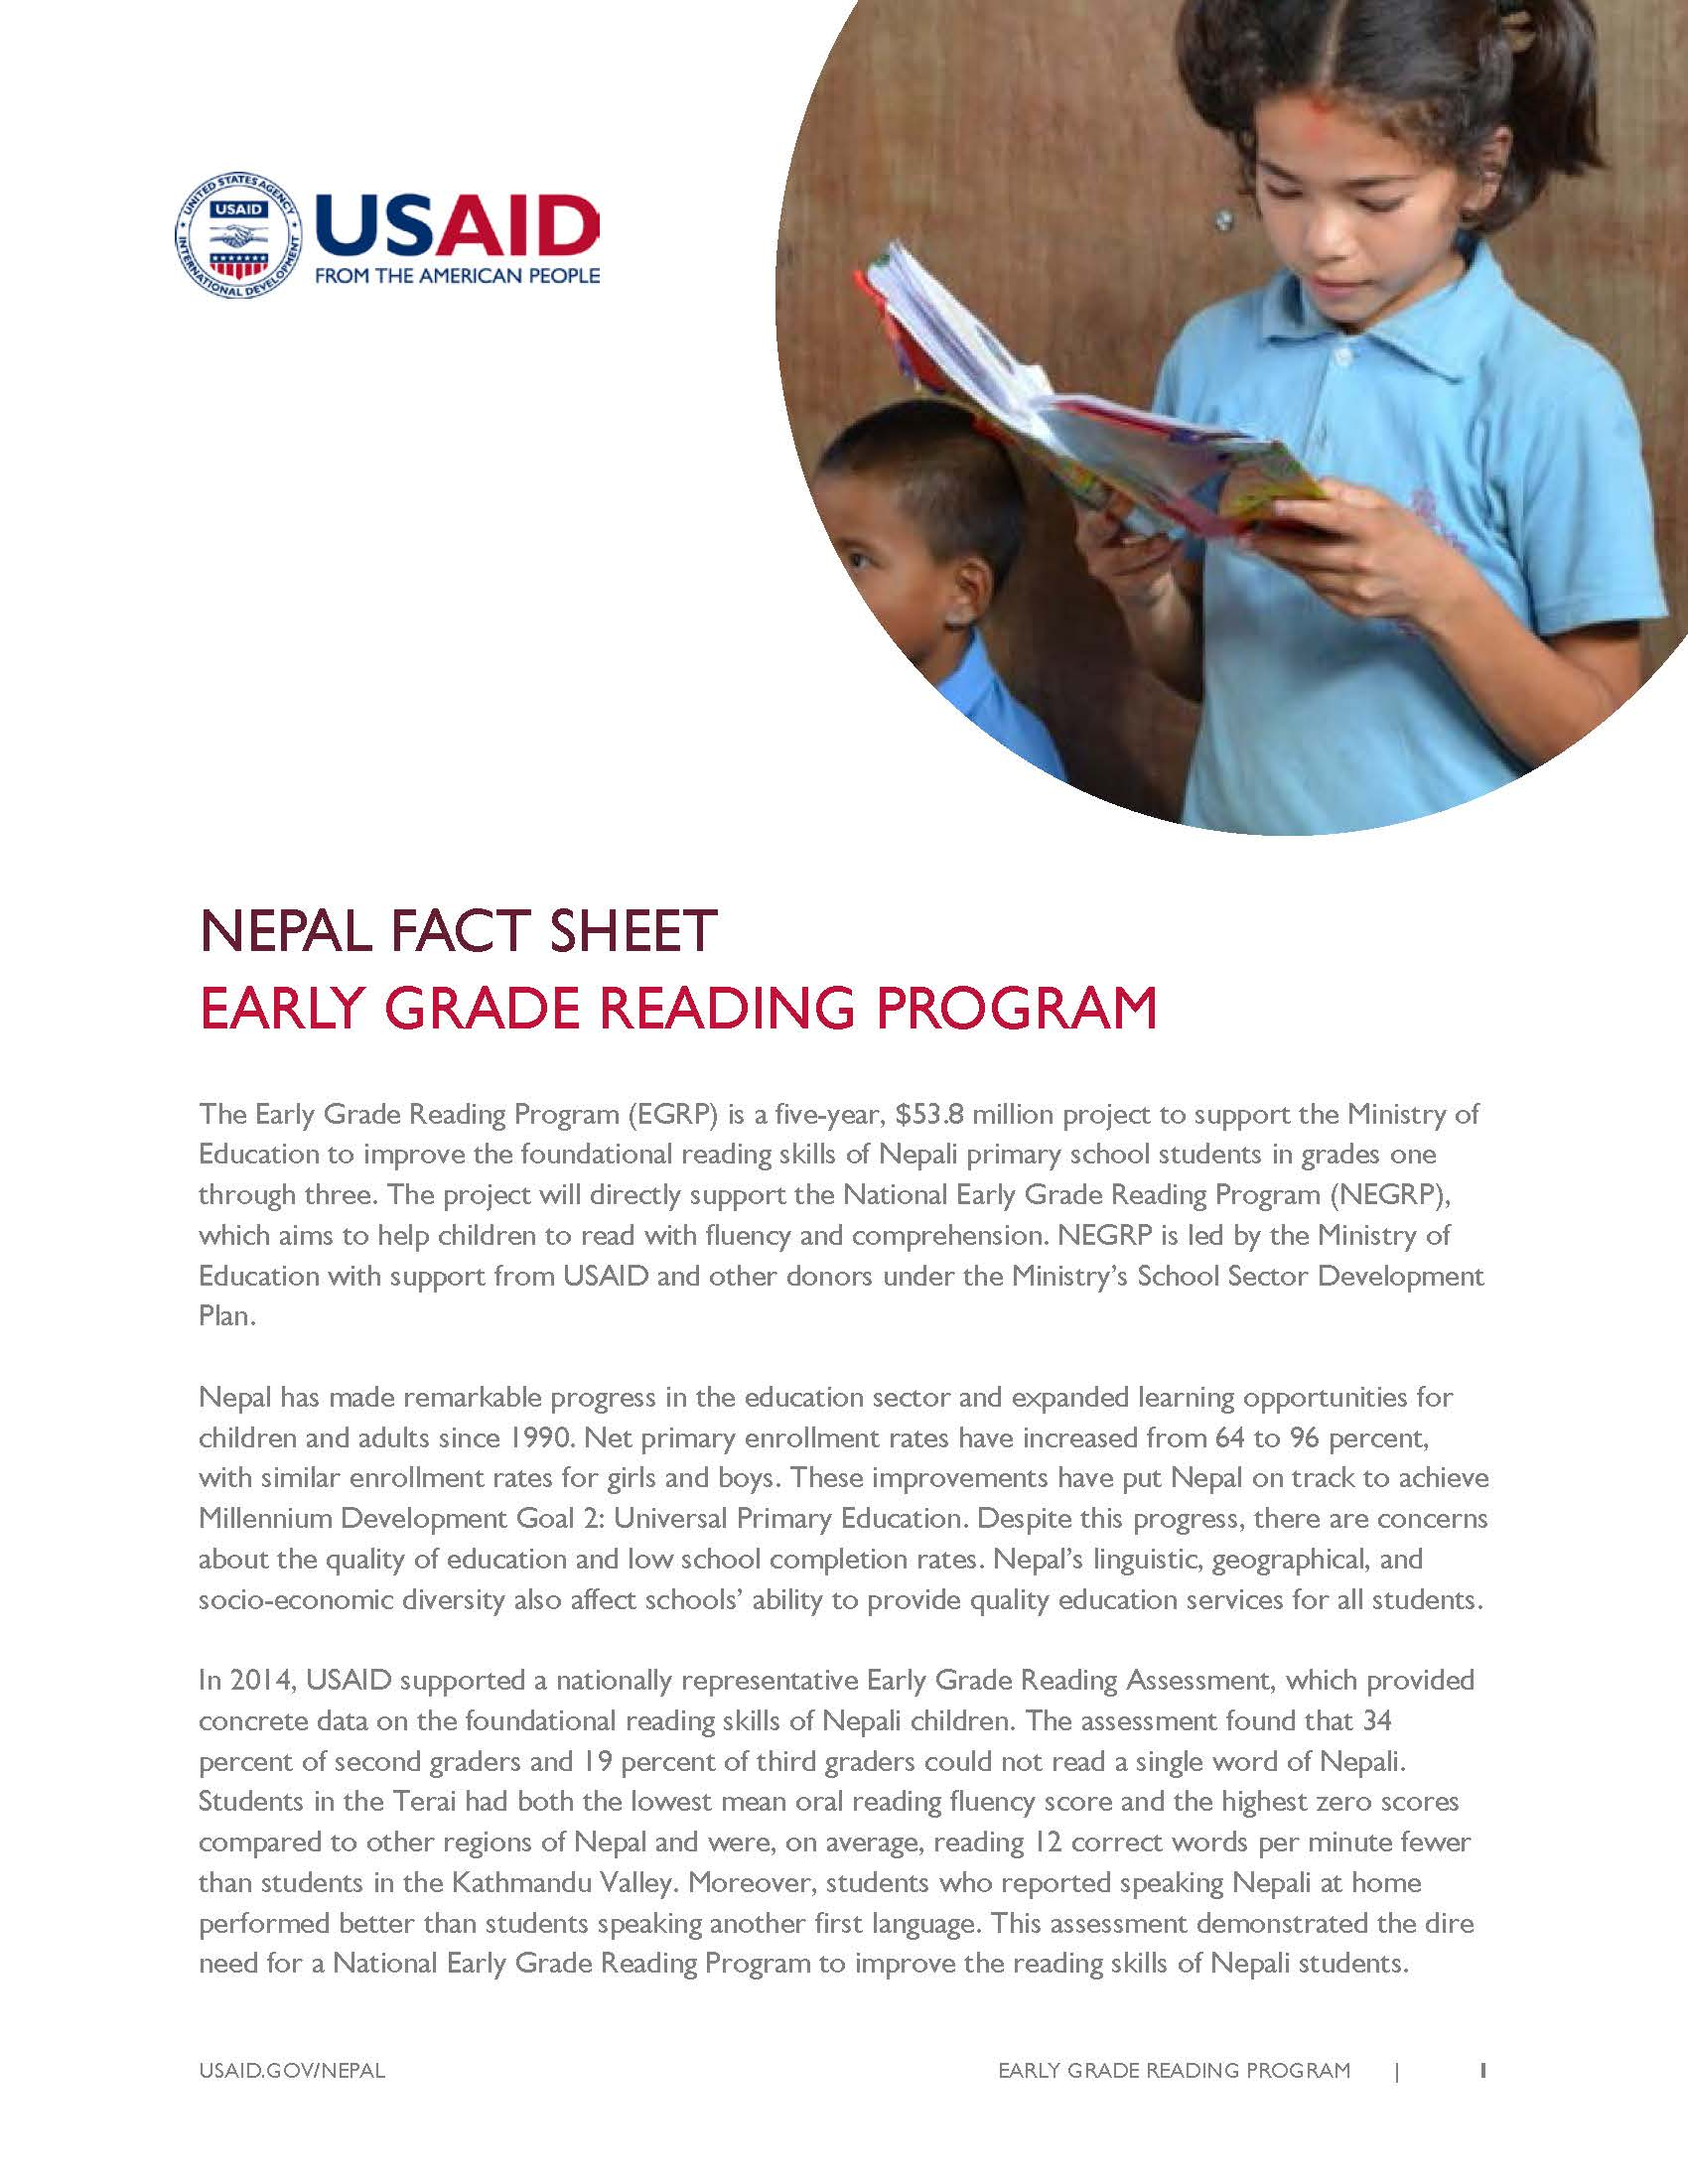 USAID's Early Grade Reading Program (EGRP) in Nepal | Fact